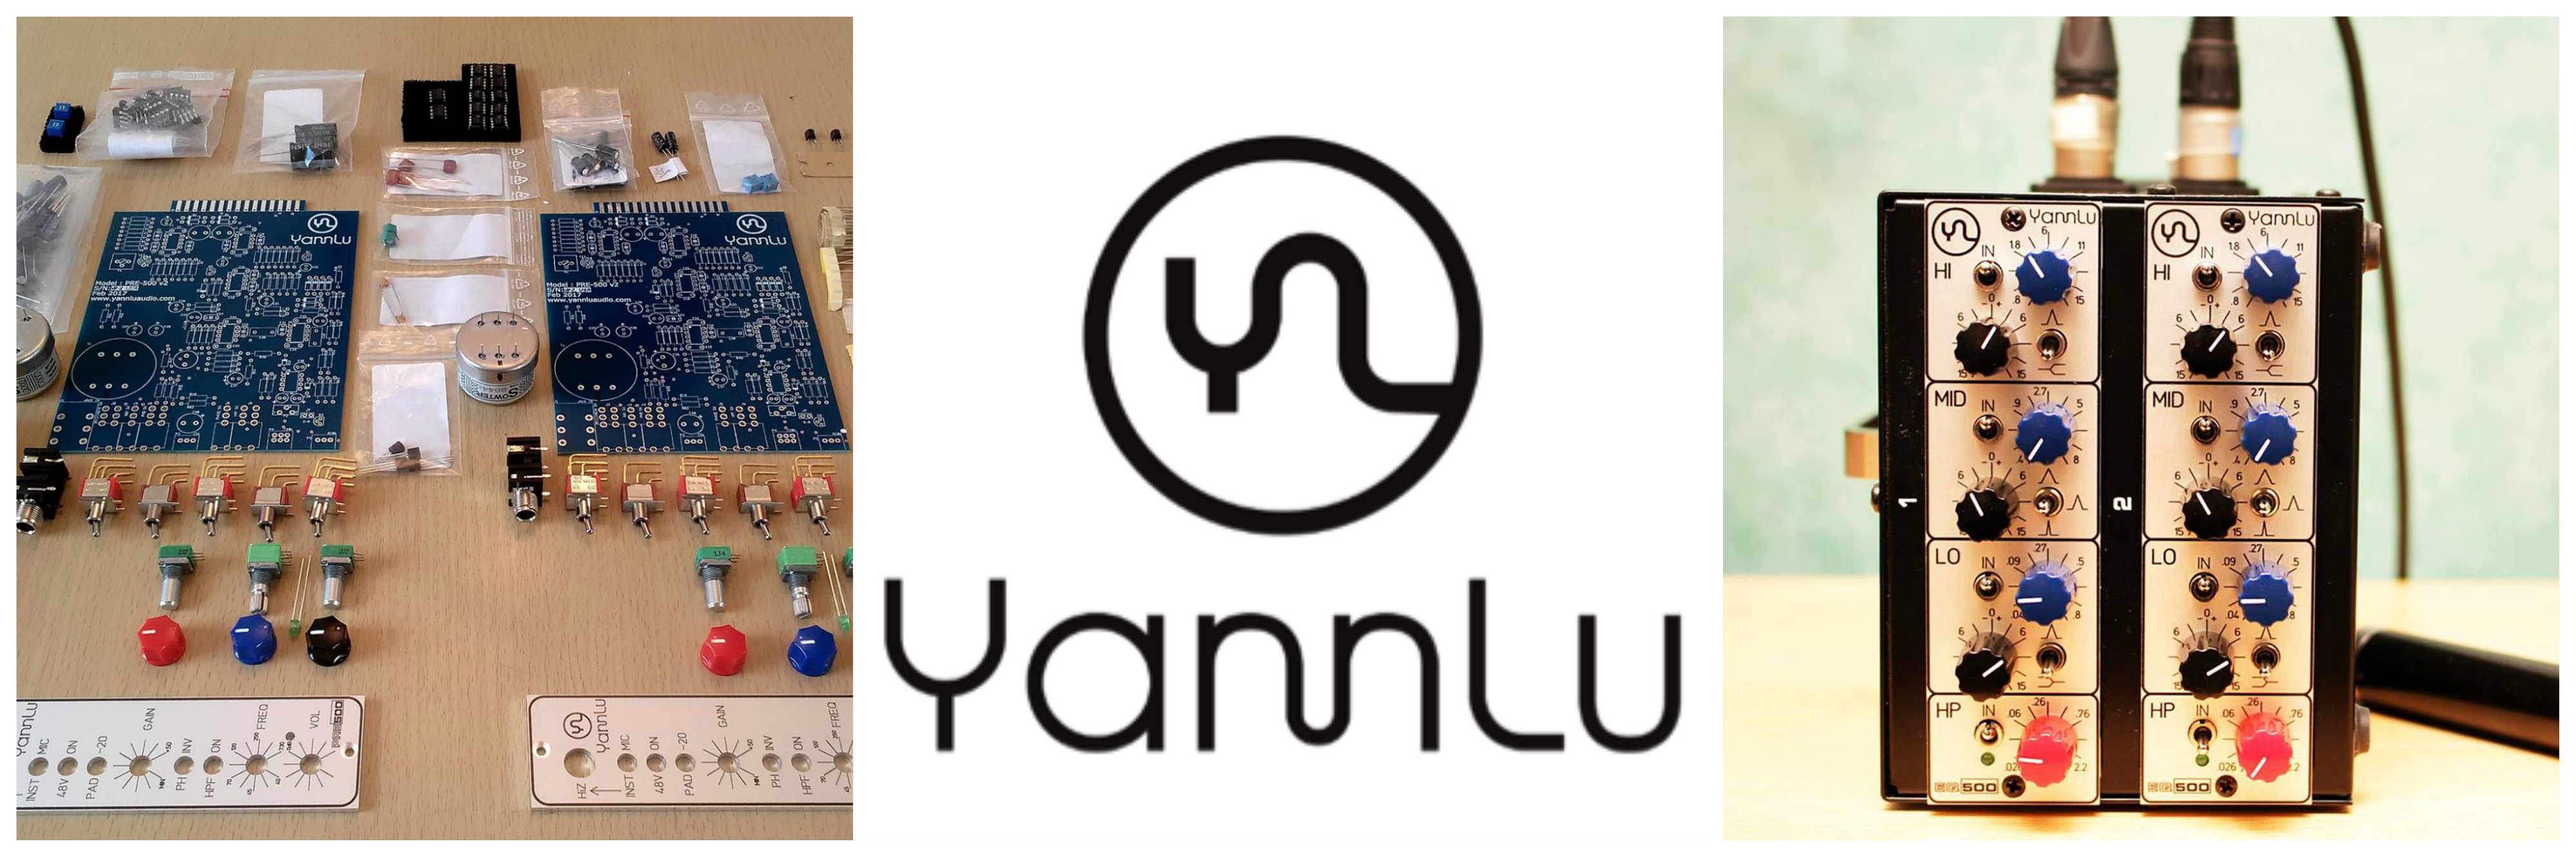 WORKSHOP YANNLU PRO AUDIO